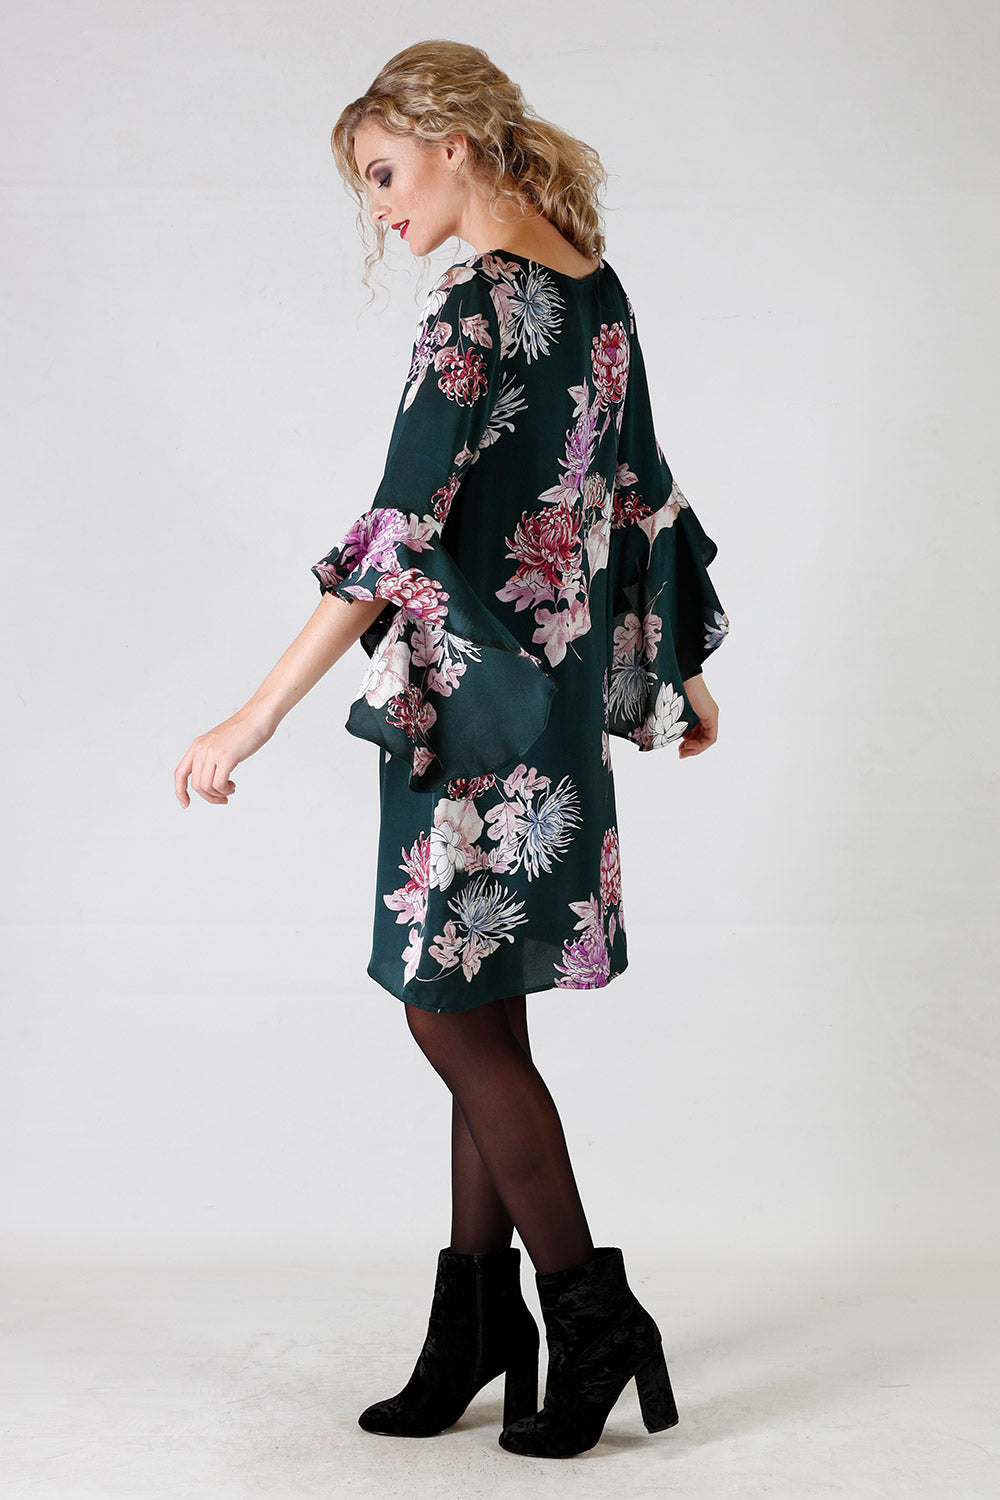 Ainsleigh Dress | Joy | New Zealand Fashion Designer | Annah Stretton